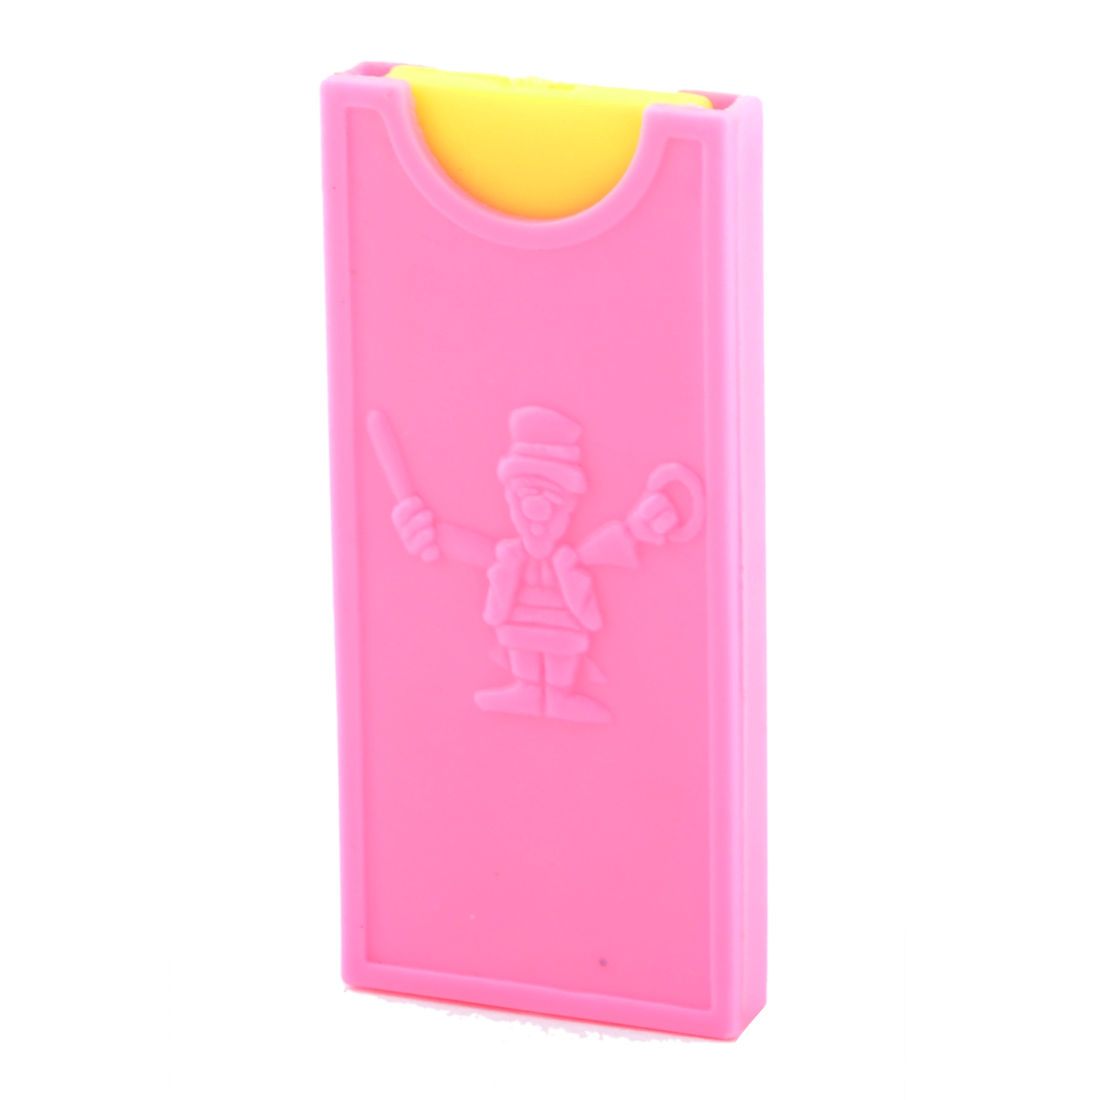 Party Plastic Rectangle Shape 2 Parts Coin Magic Trick Toy Yellow Pink